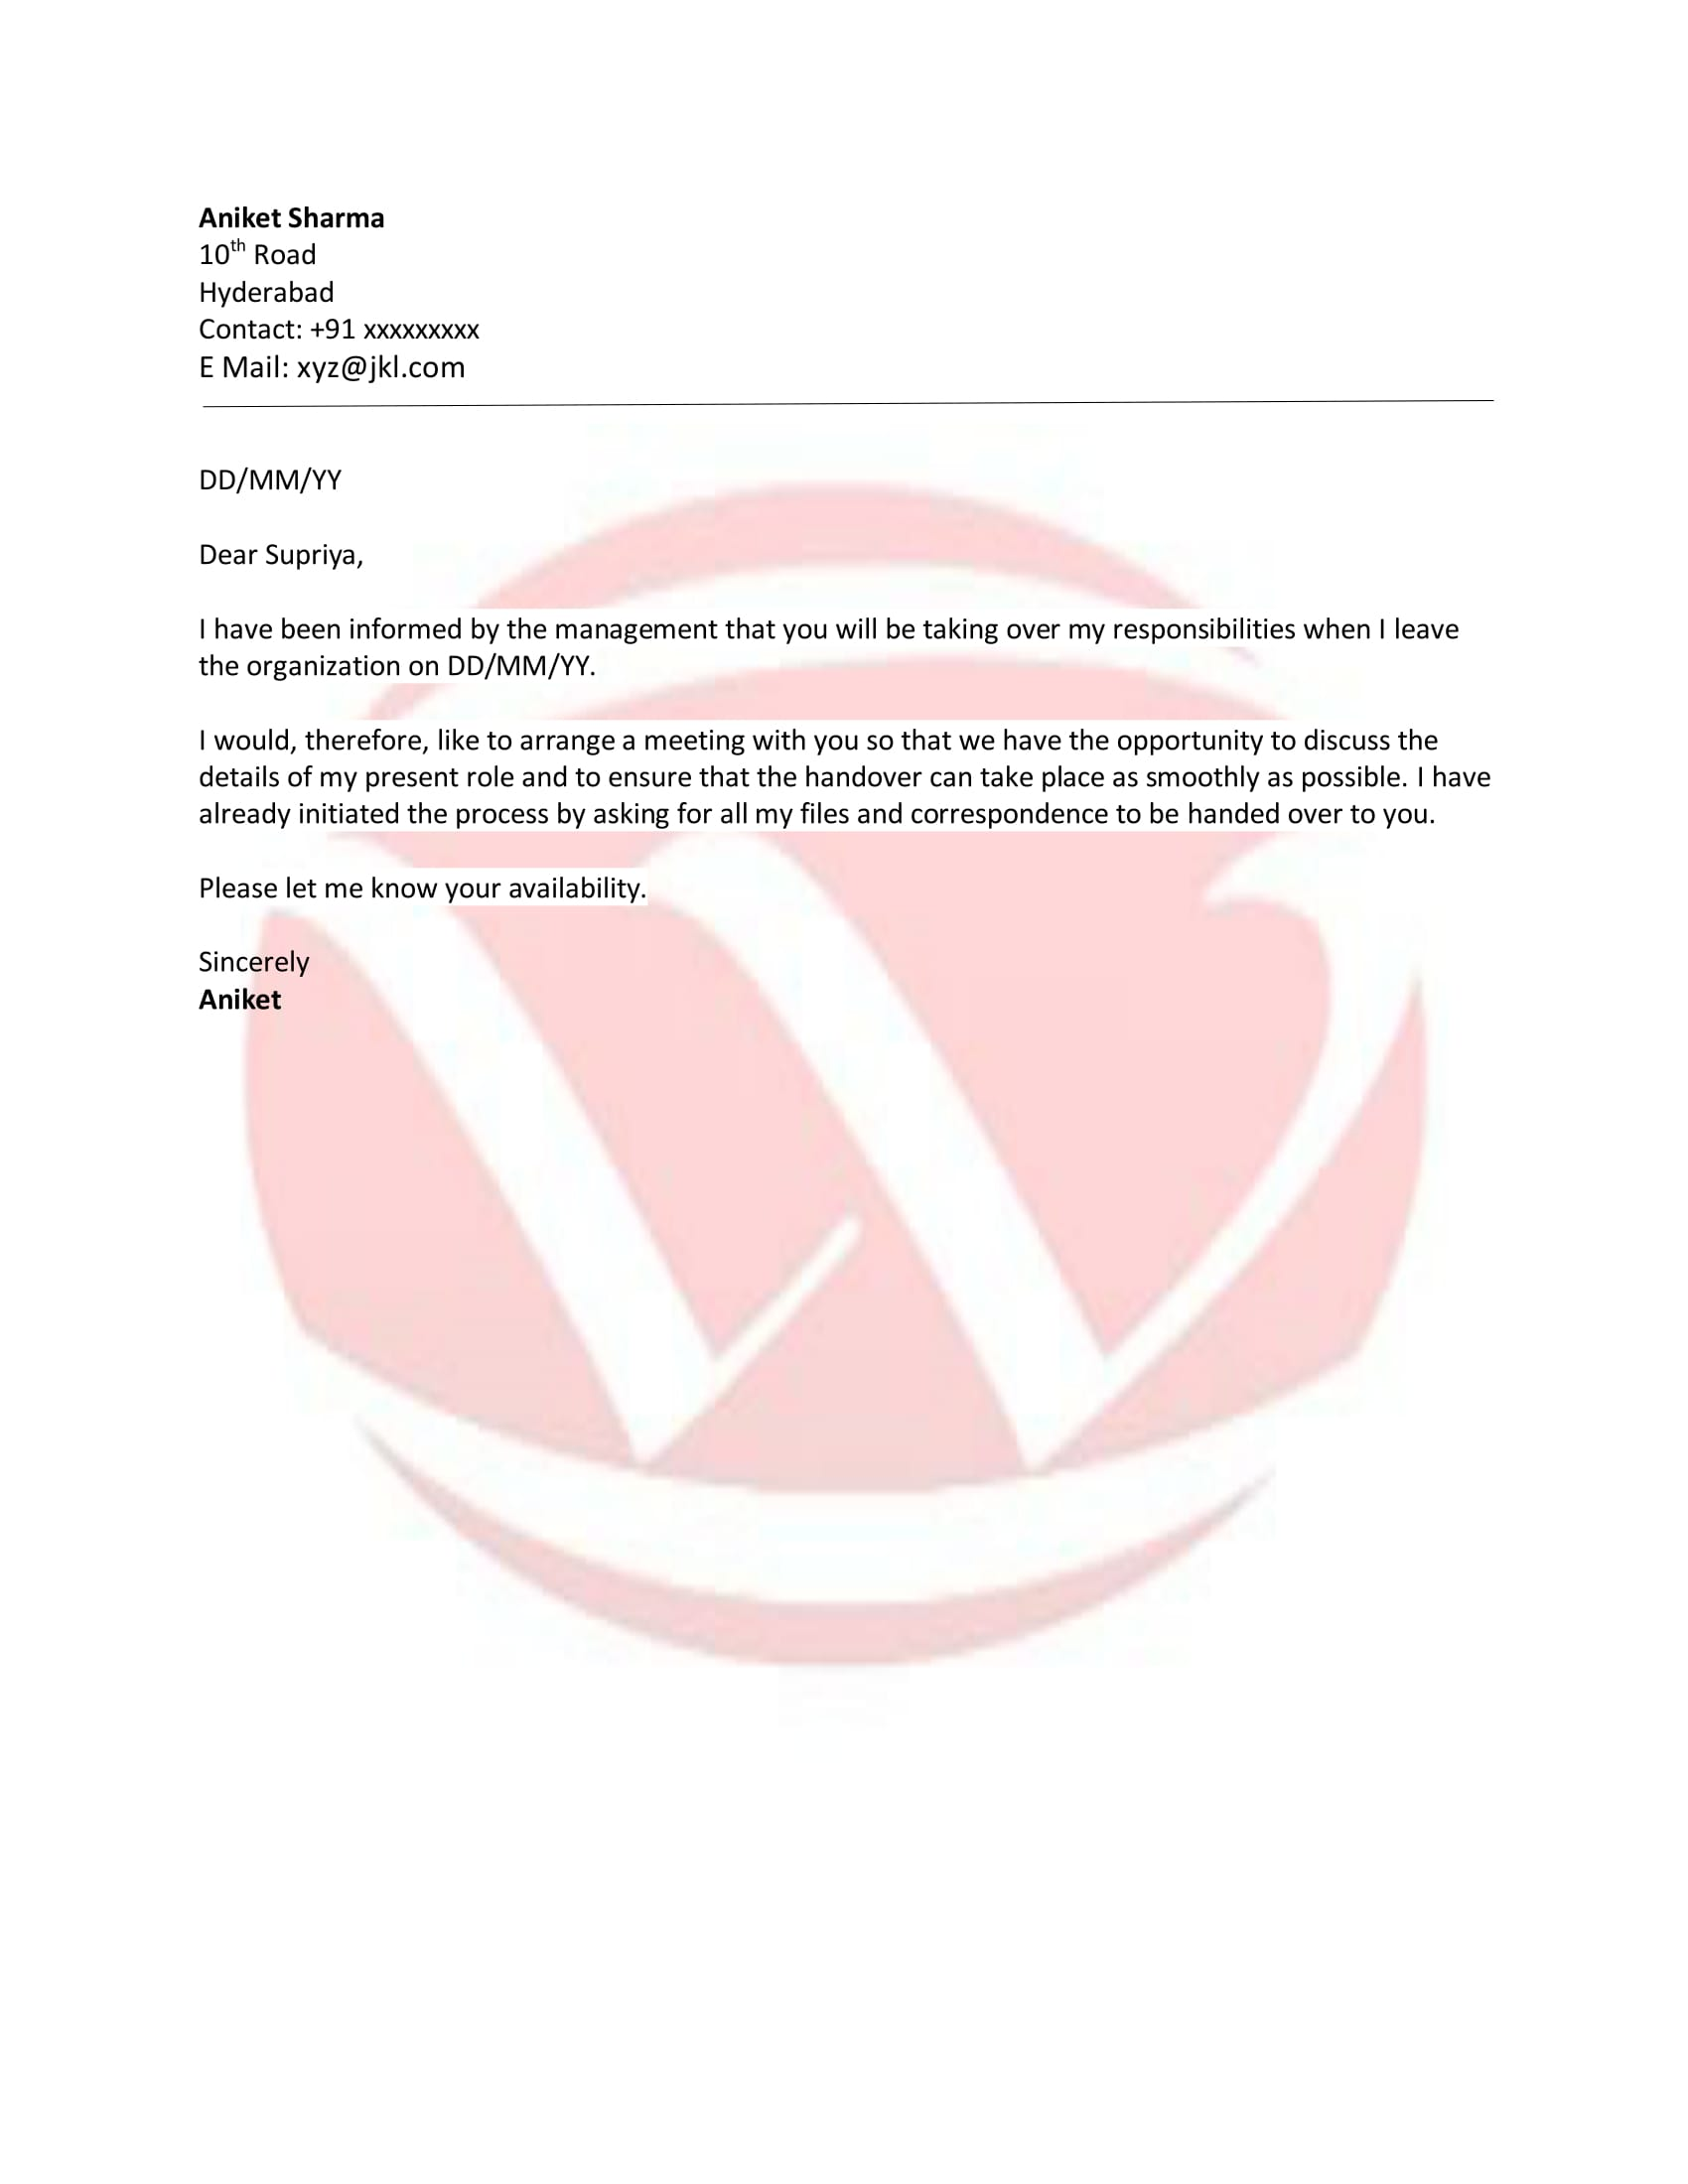 Responsibilities handover sample letter format download letter responsibilities handover sample letter spiritdancerdesigns Gallery